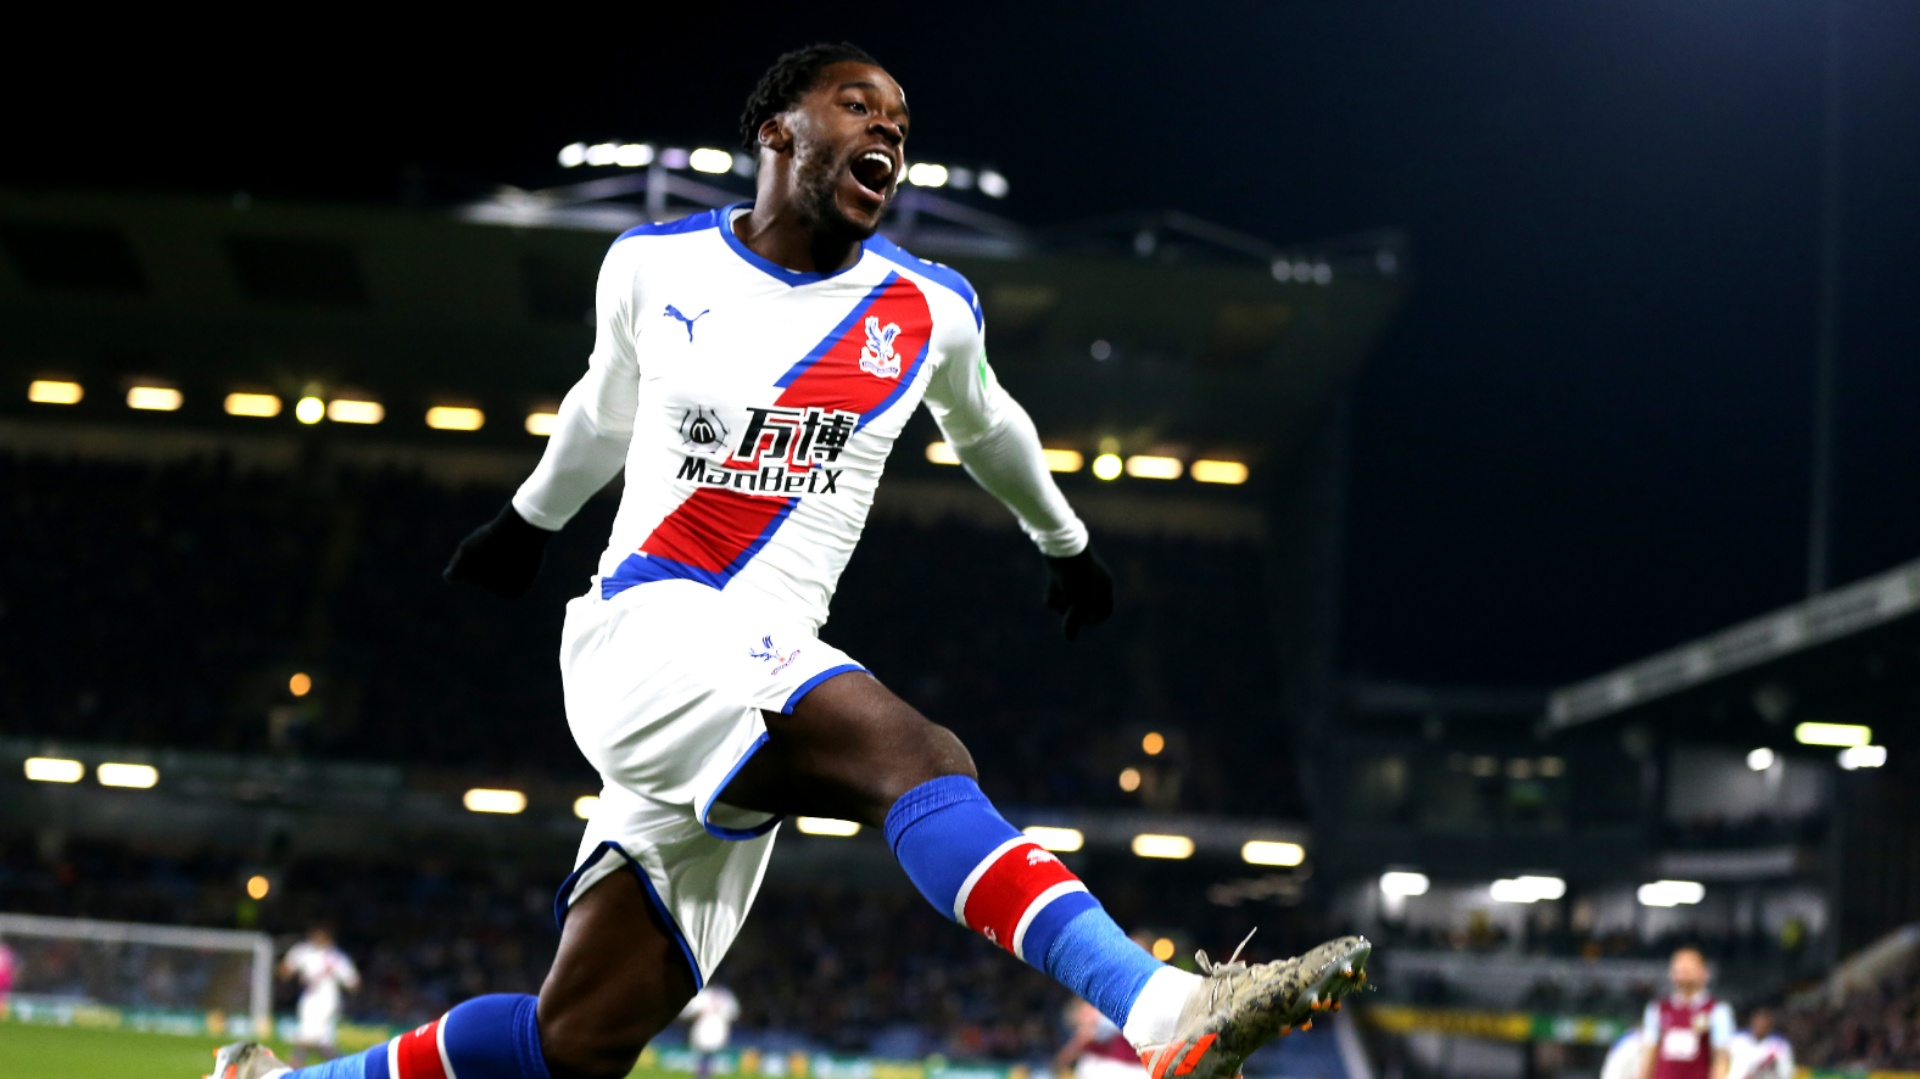 Crystal Palace vs. AFC Bournemouth - Football Match Report